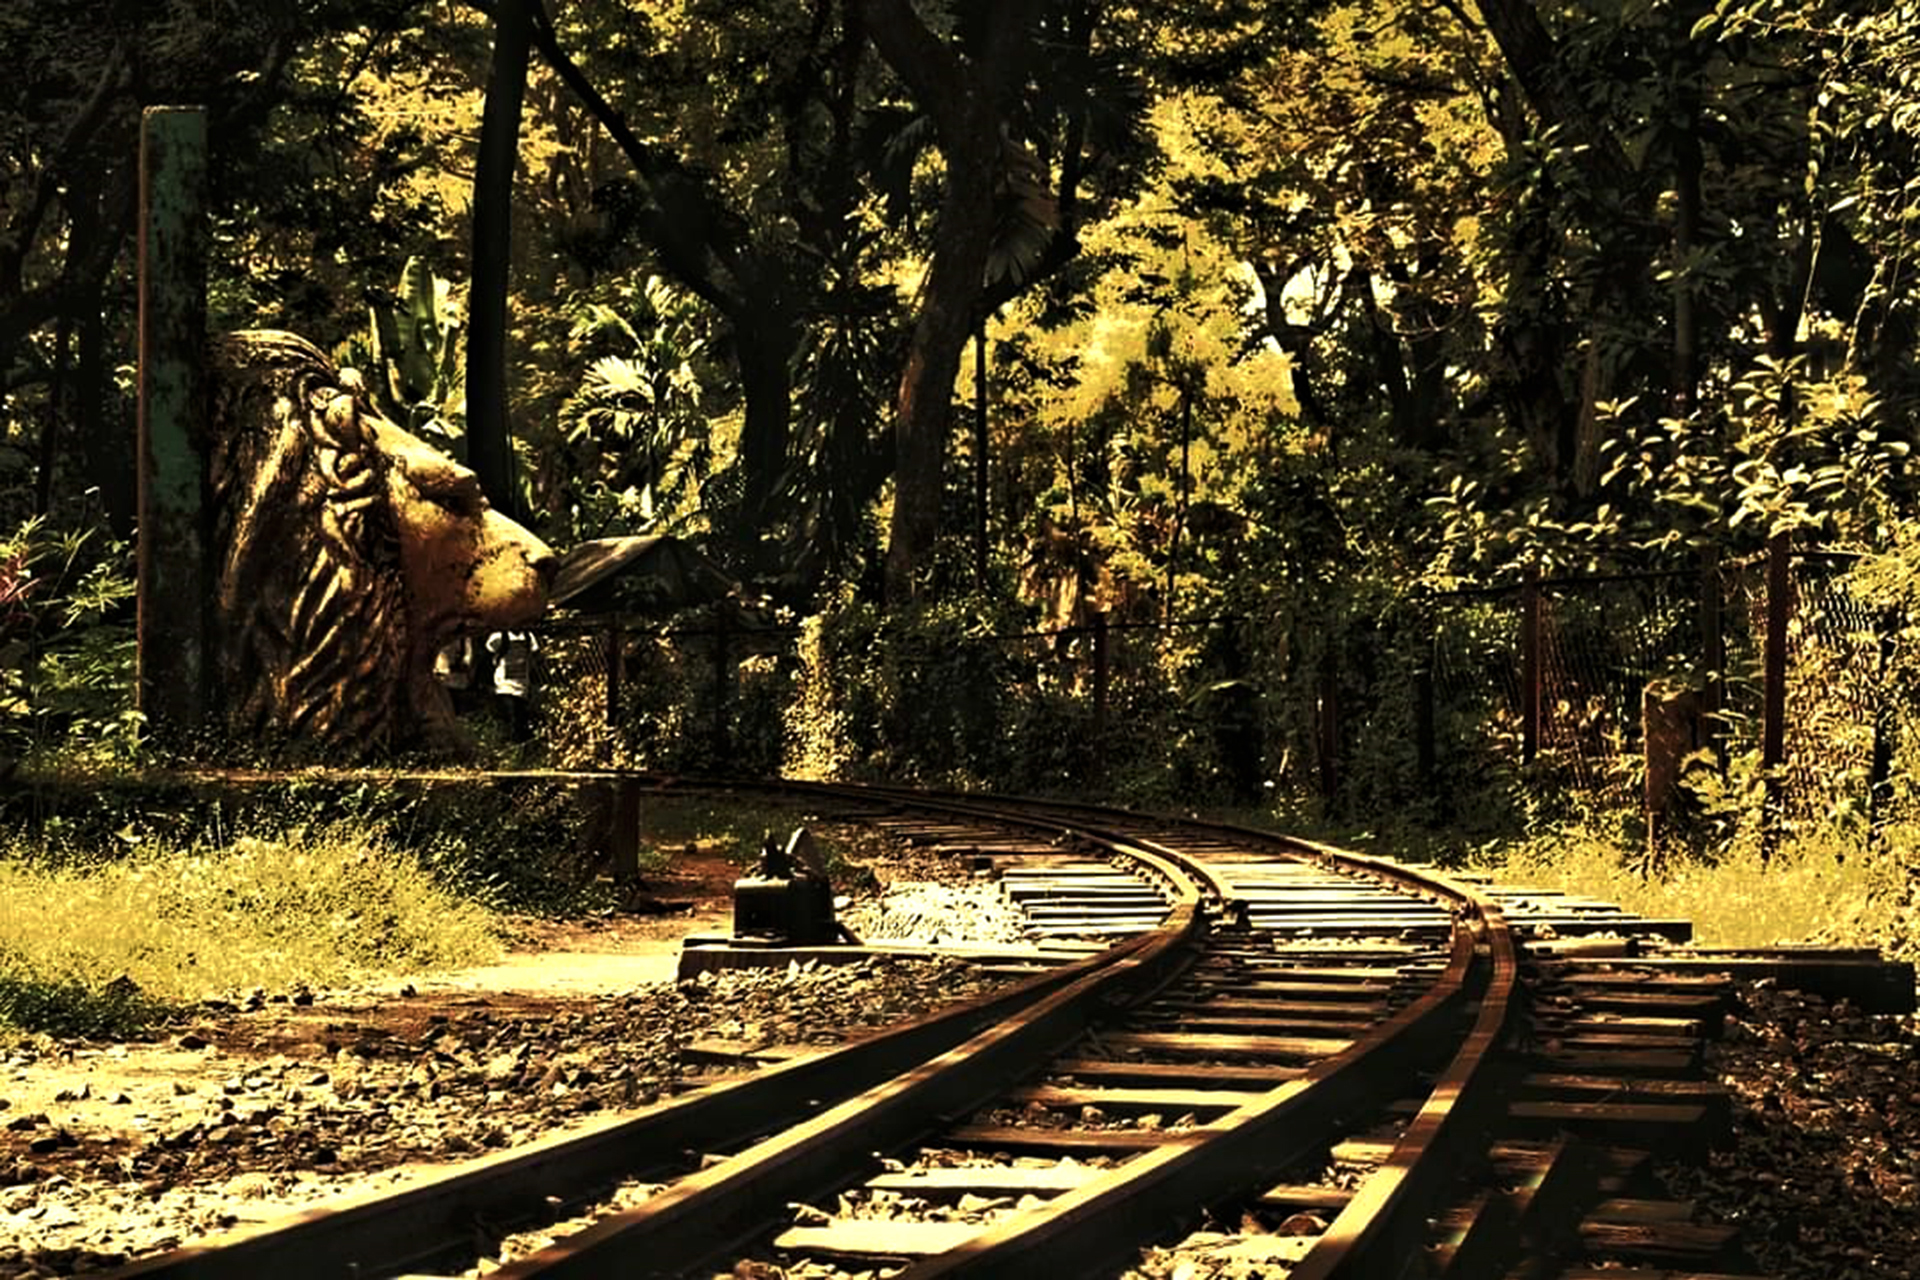 TRAIN TRACK AT SANJAY GANDHI NATIONAL PARK MUMBAI INDIA